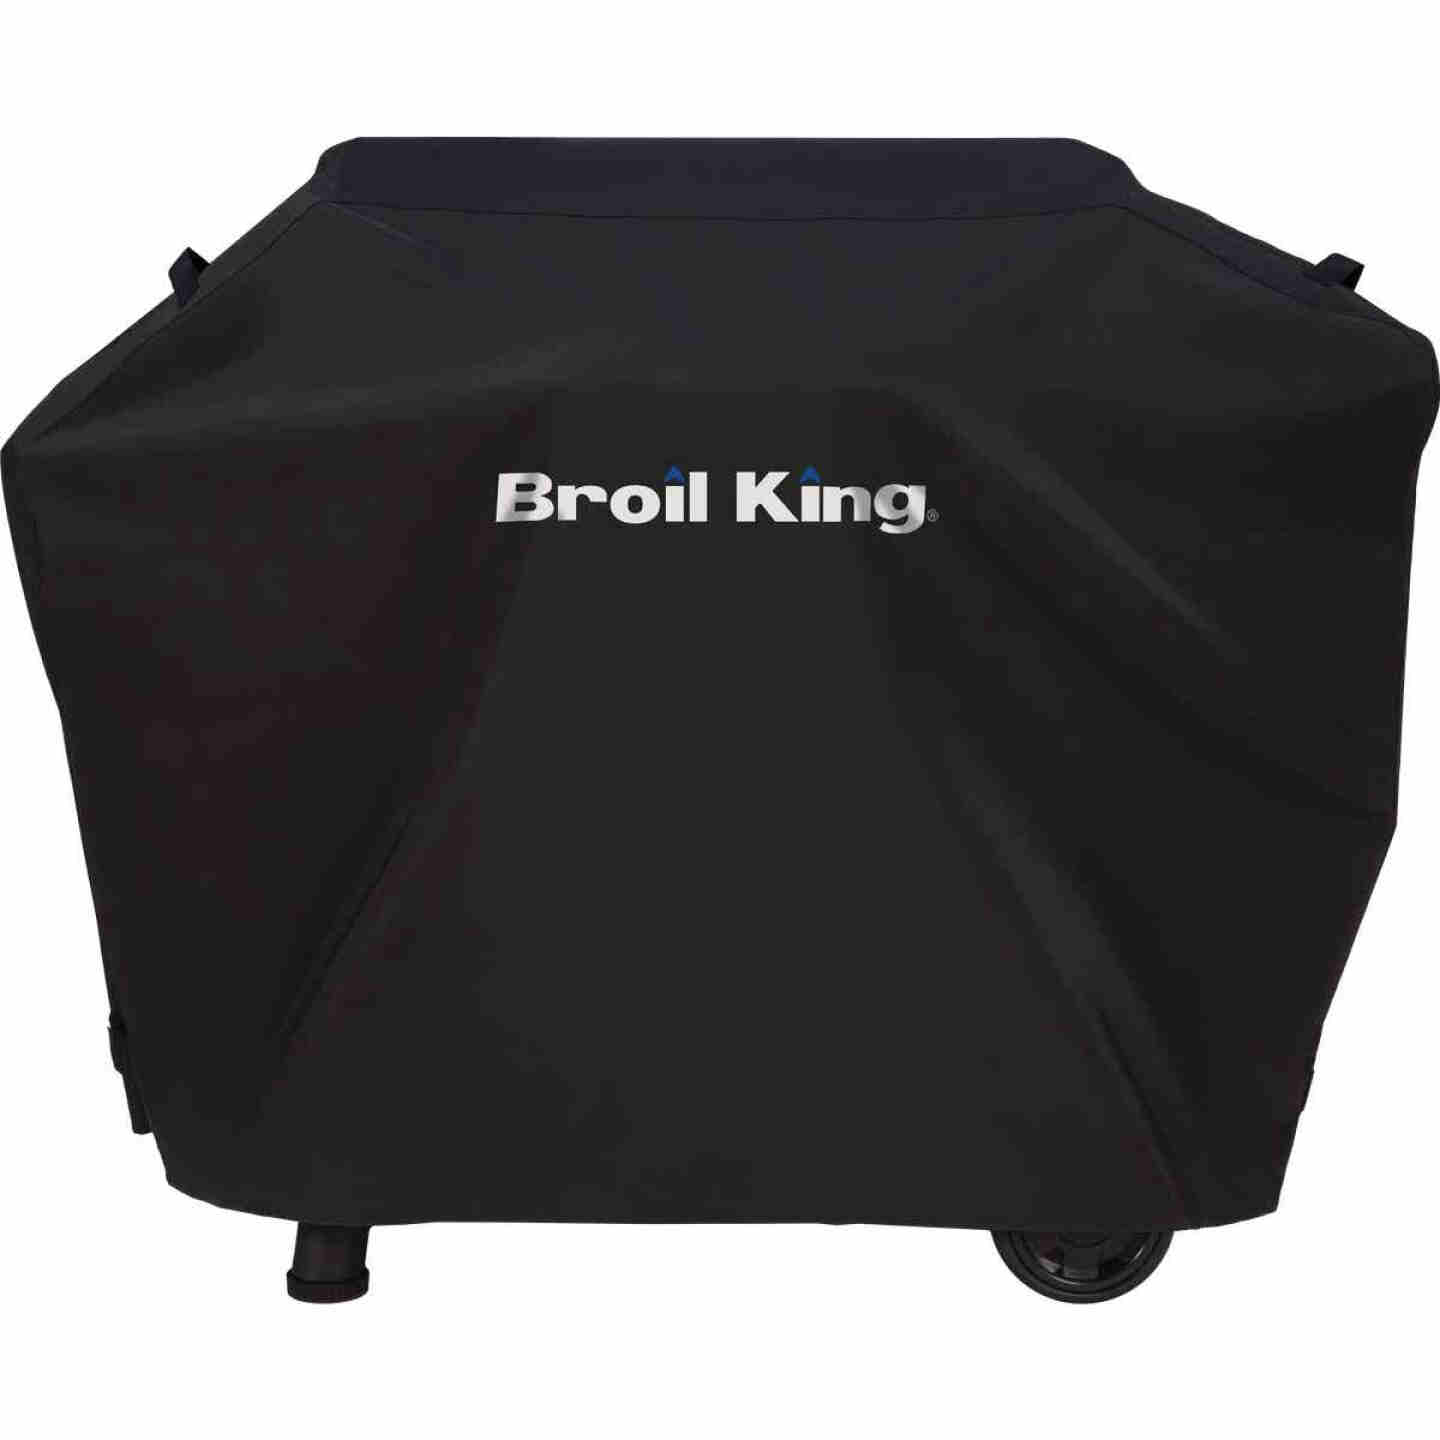 Broil King Crown Pellet 500 49 In. Black Grill Cover Image 3